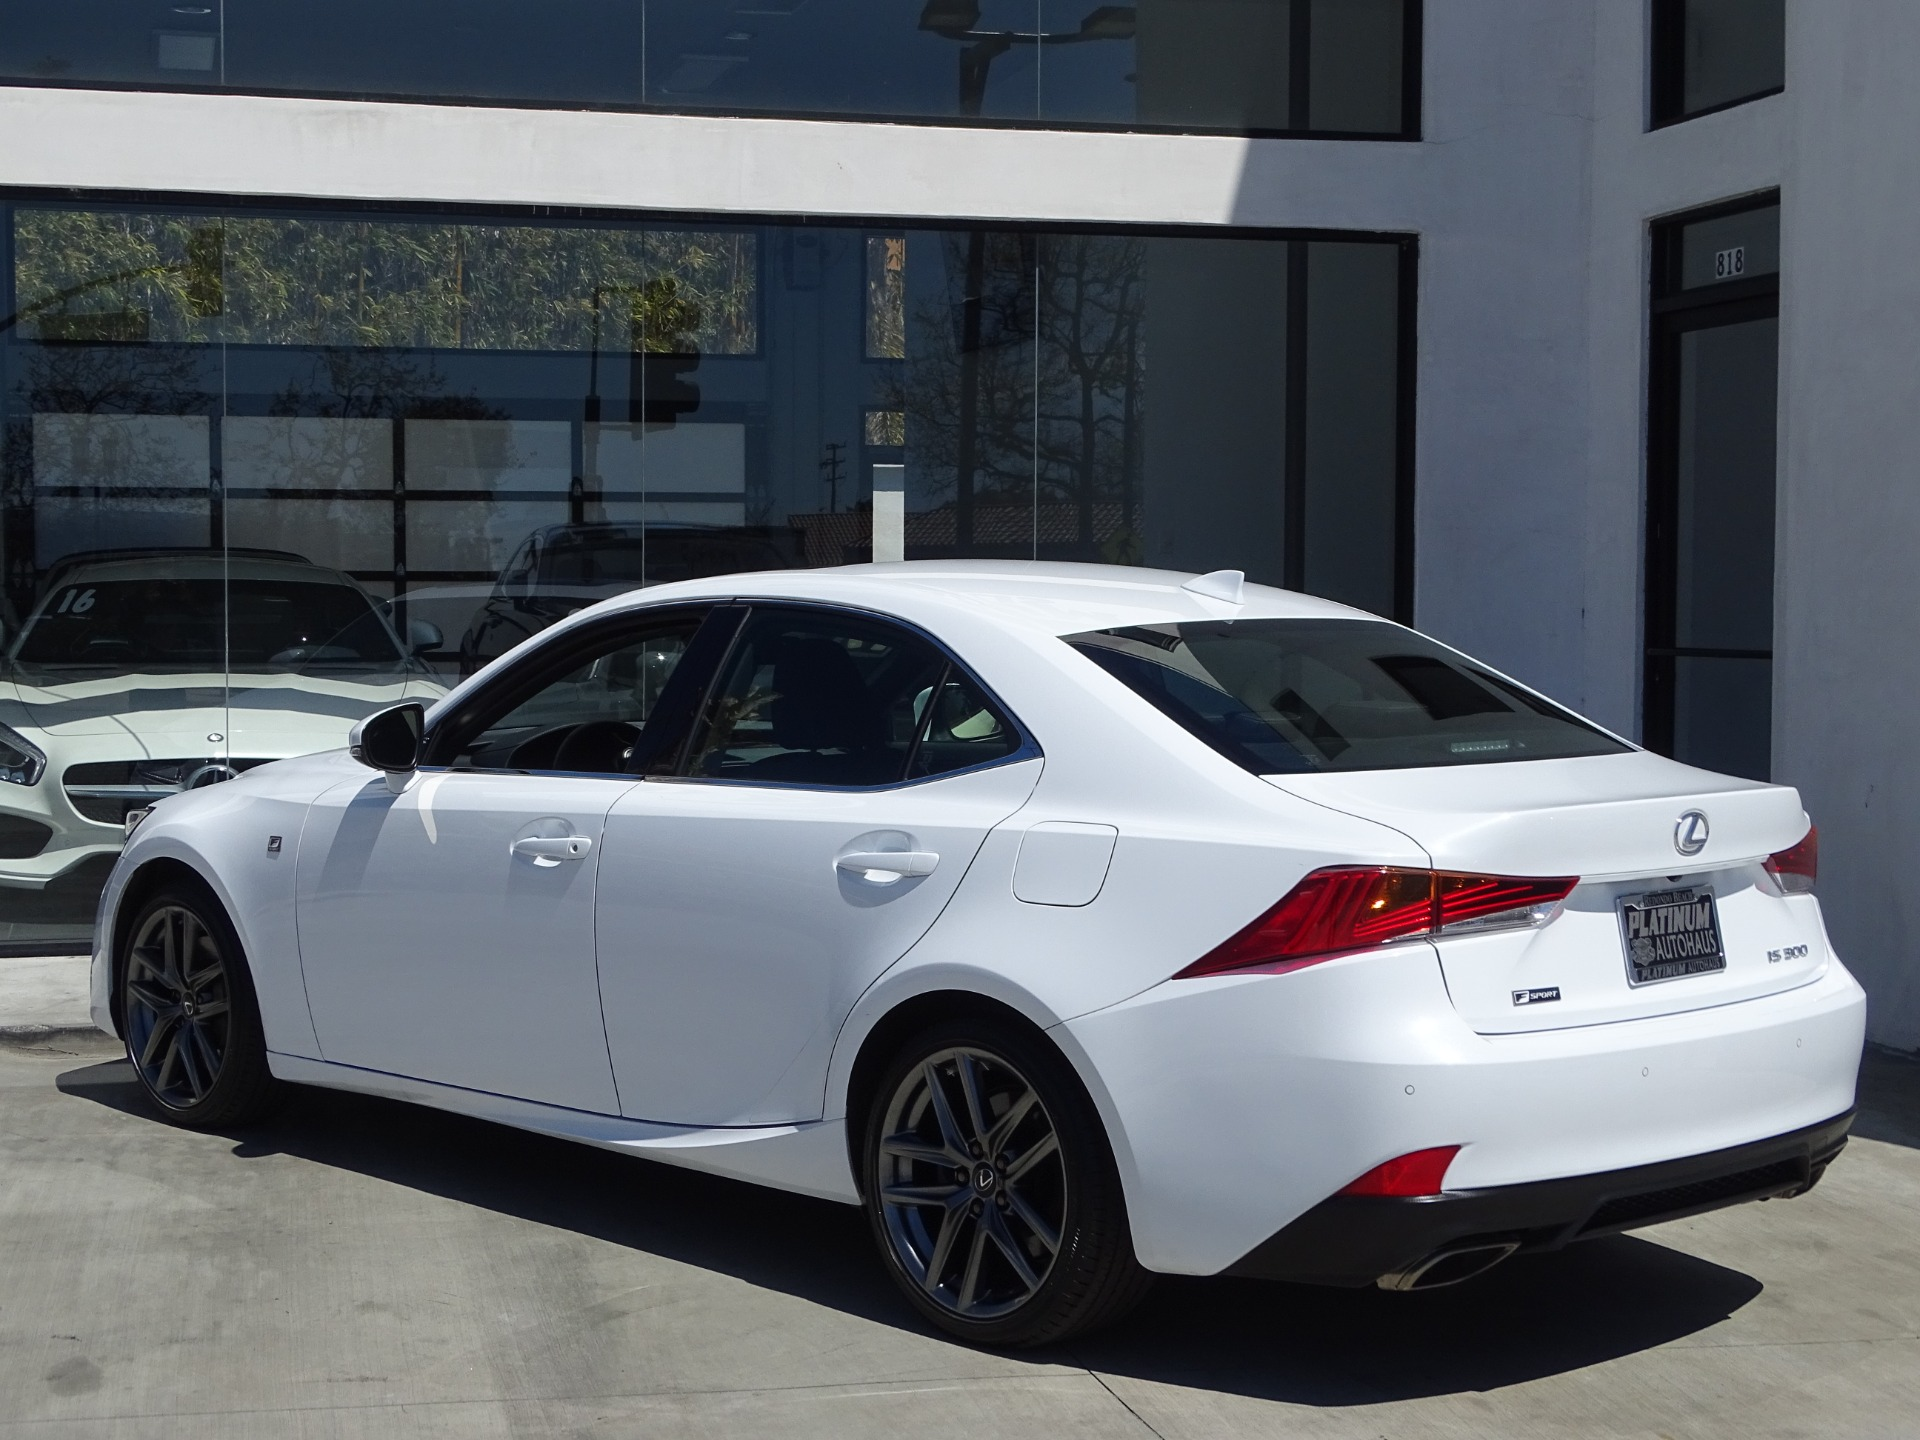 Free Vehicle History Report By Vin >> 2019 Lexus IS 300 Stock # 6461 for sale near Redondo Beach ...